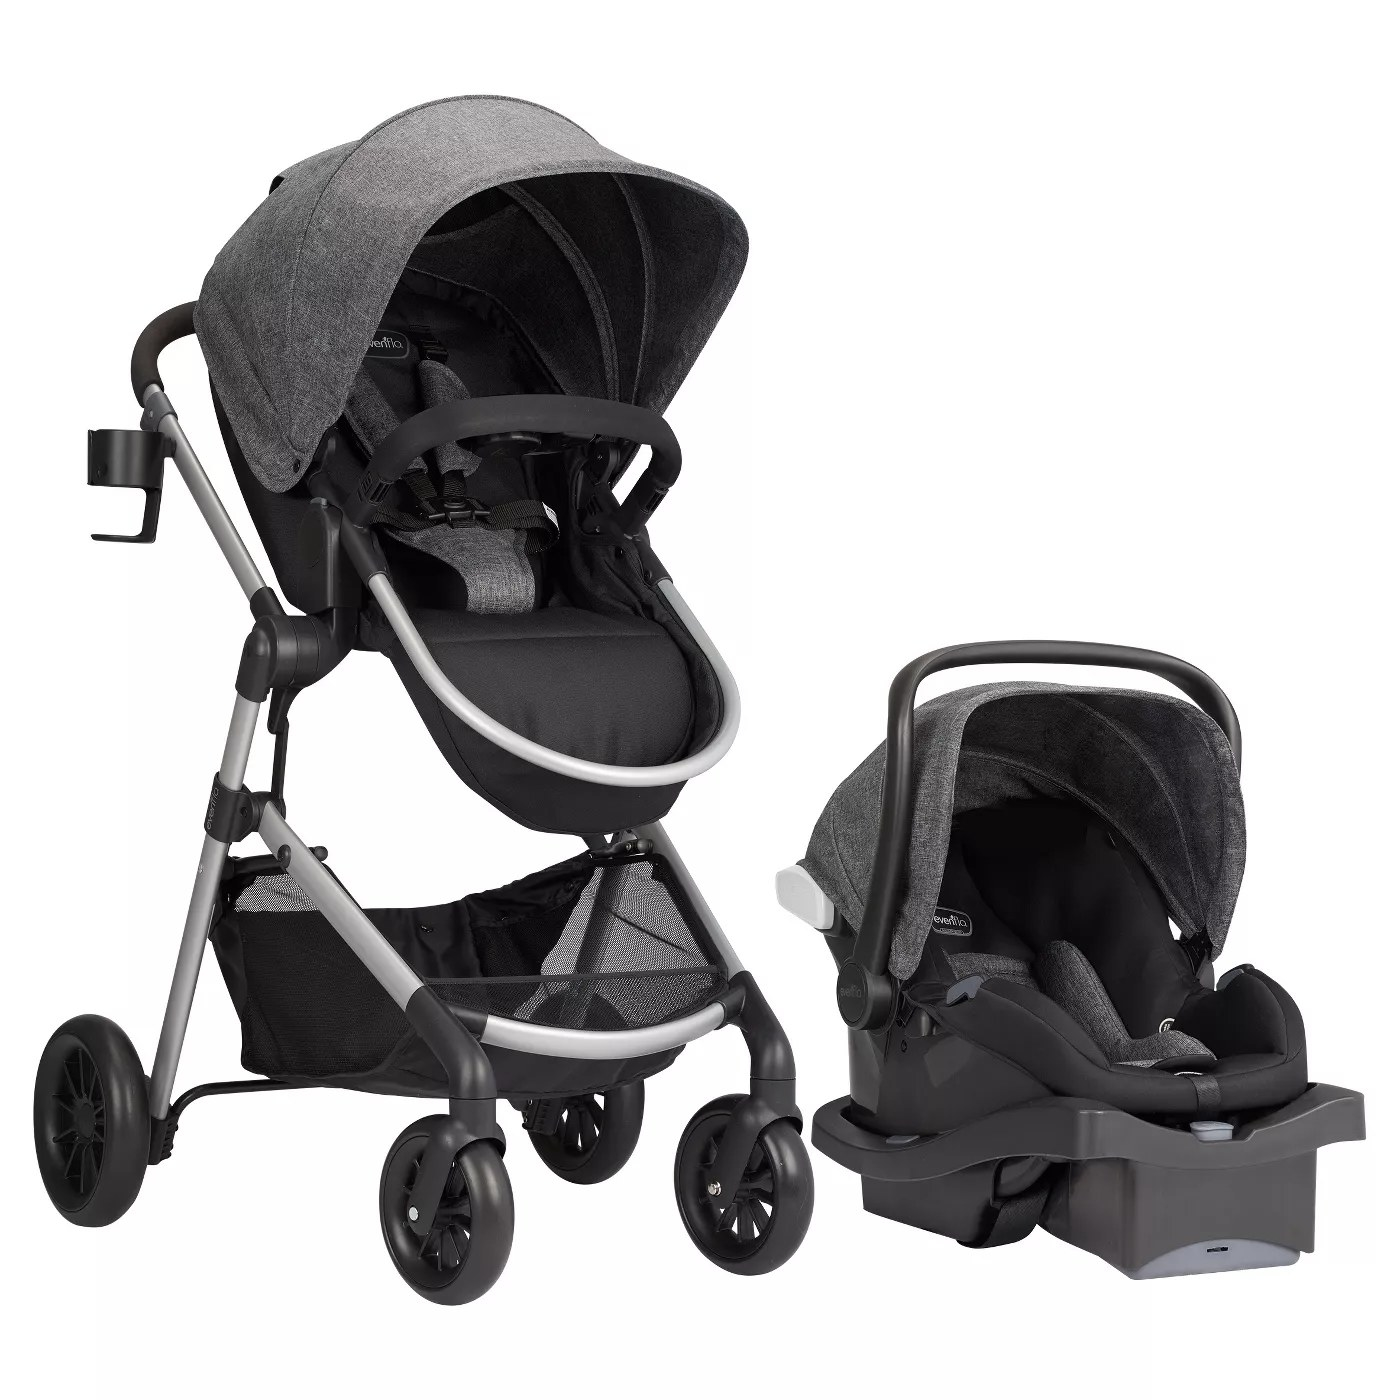 The travel system as a stroller and a car seat